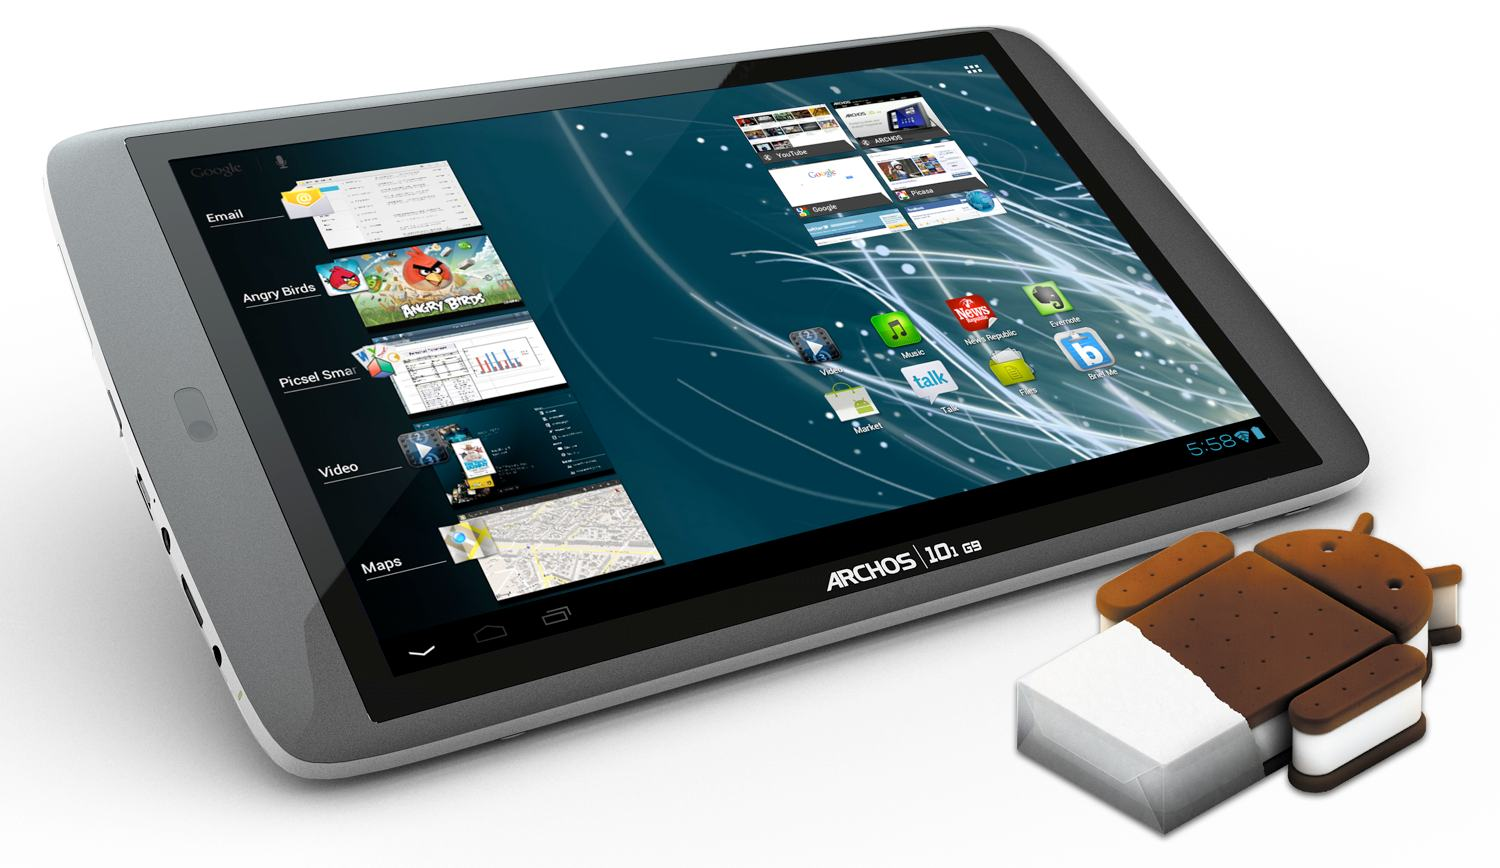 archos 101 g9 turbo ics 250gb 10 inch tablet vietnam. Black Bedroom Furniture Sets. Home Design Ideas